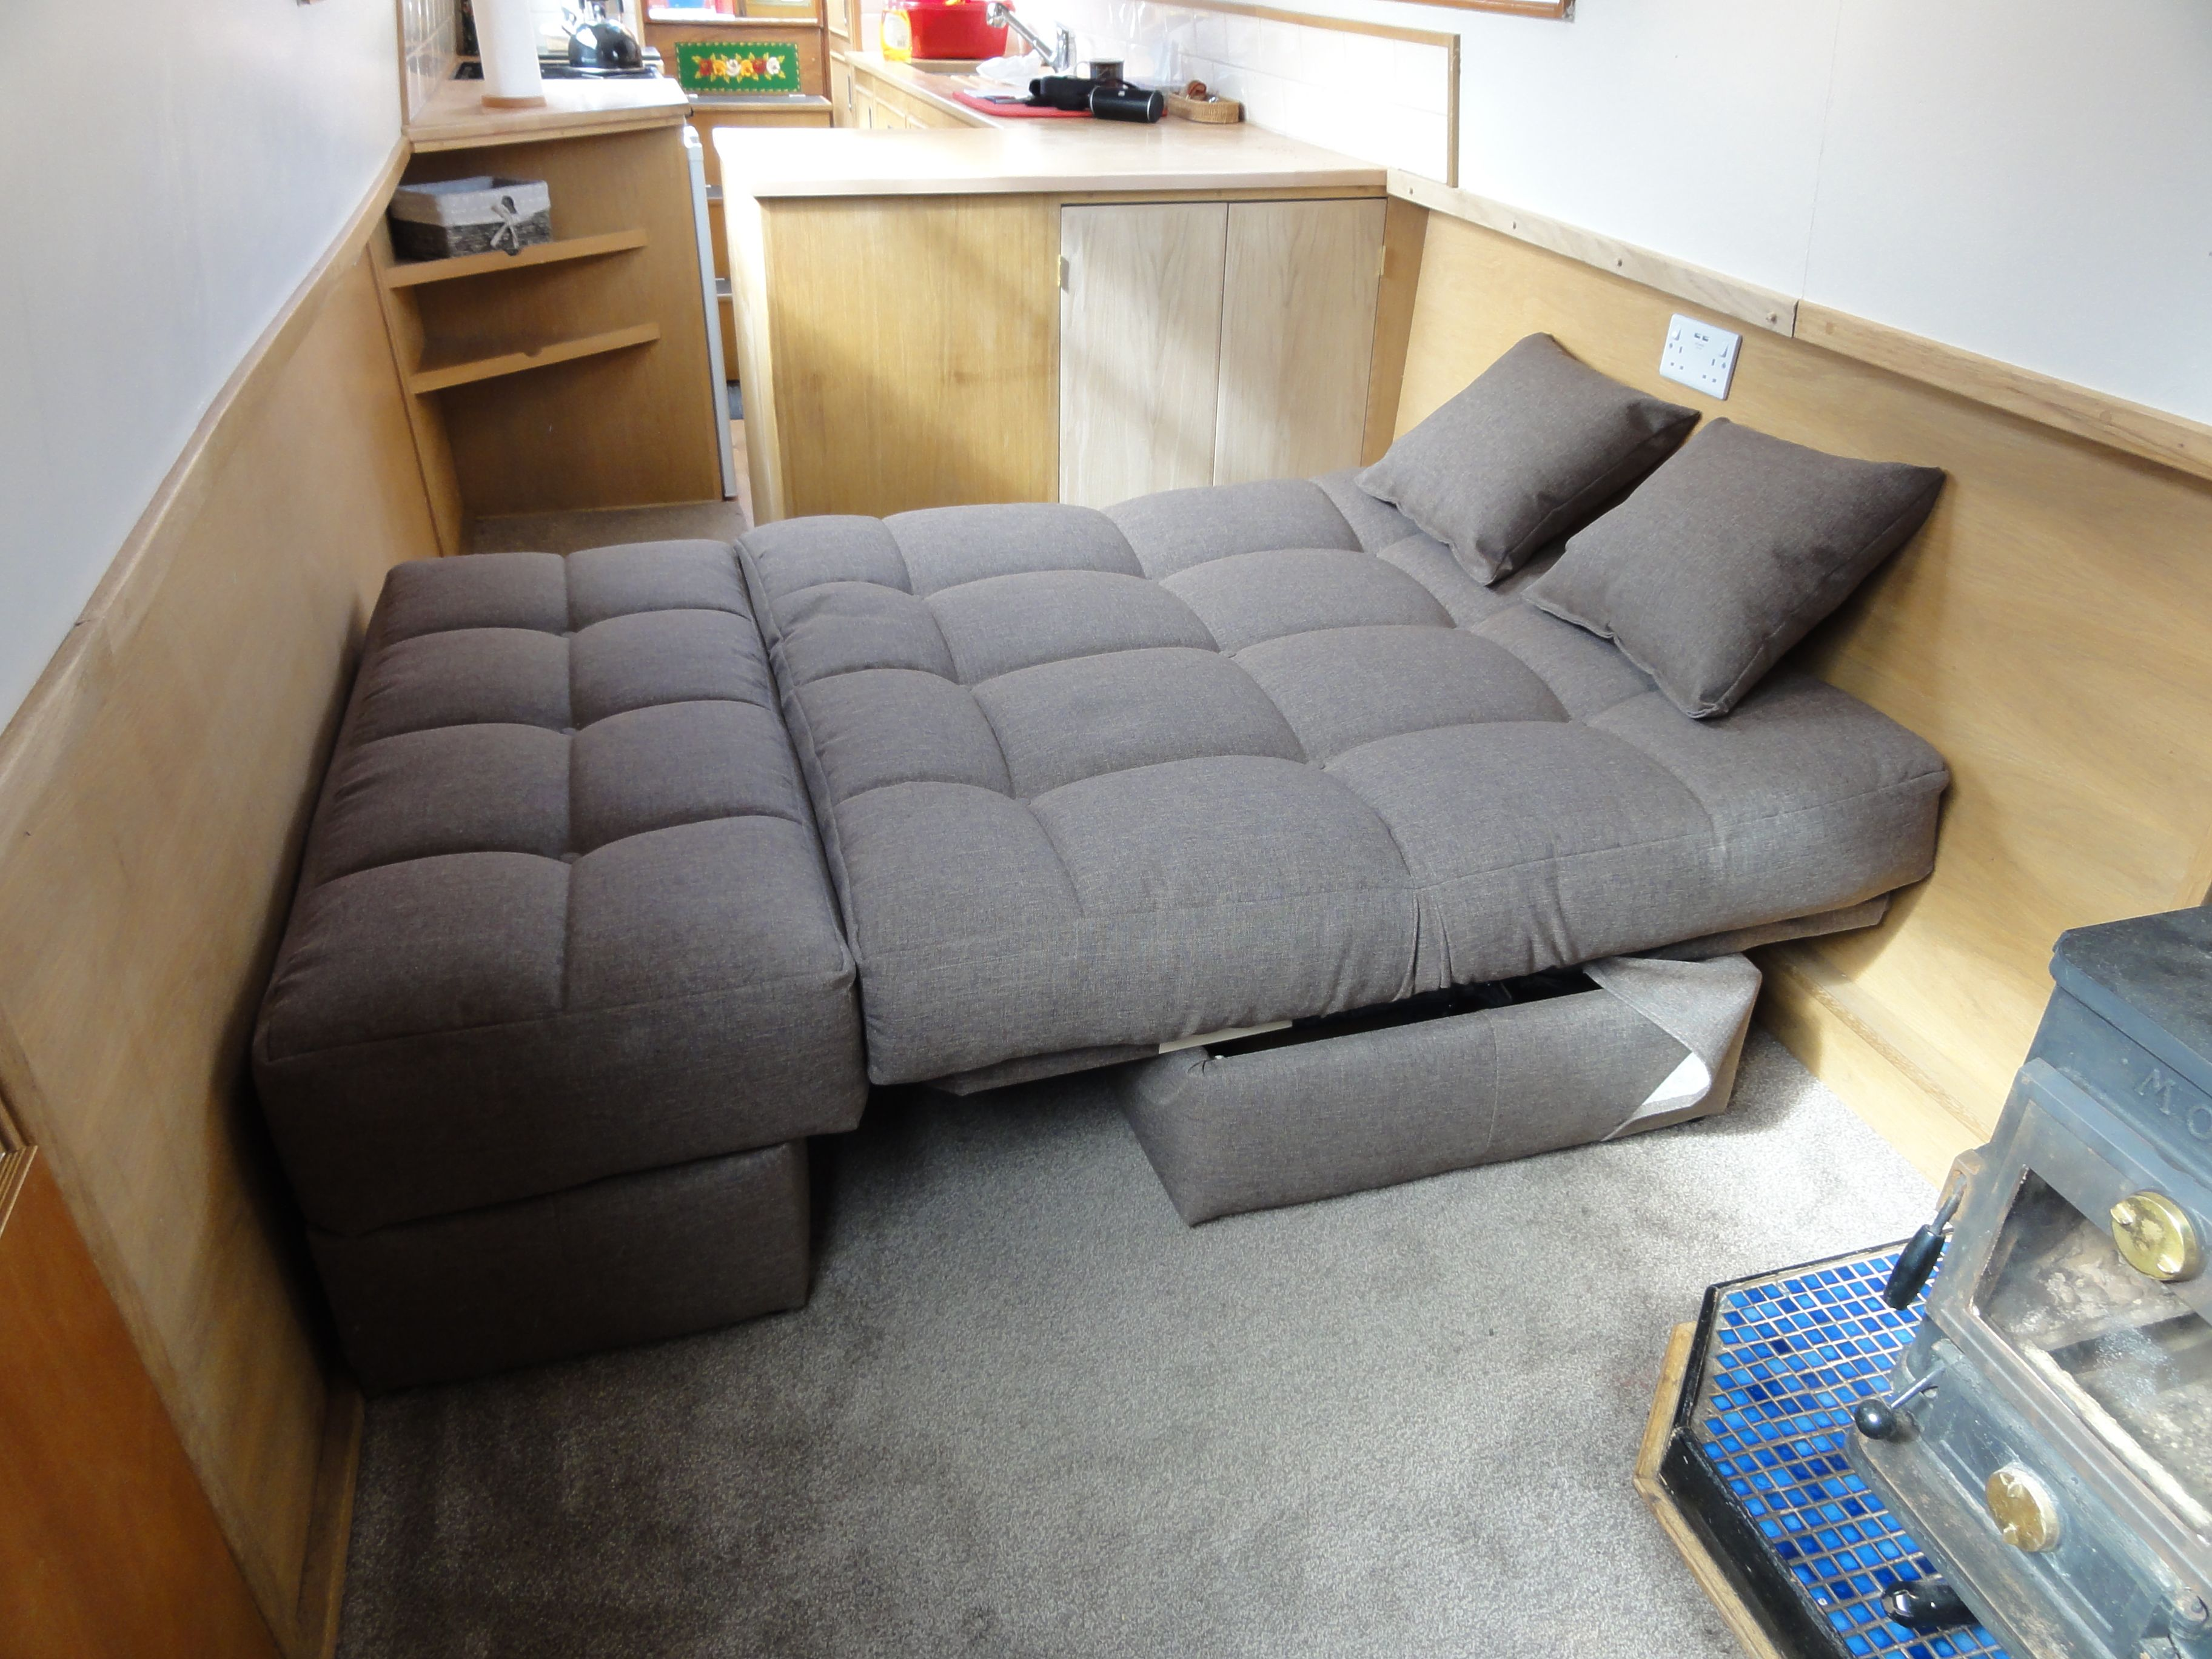 Hampton sofa bed in sleeping position, made to fit across